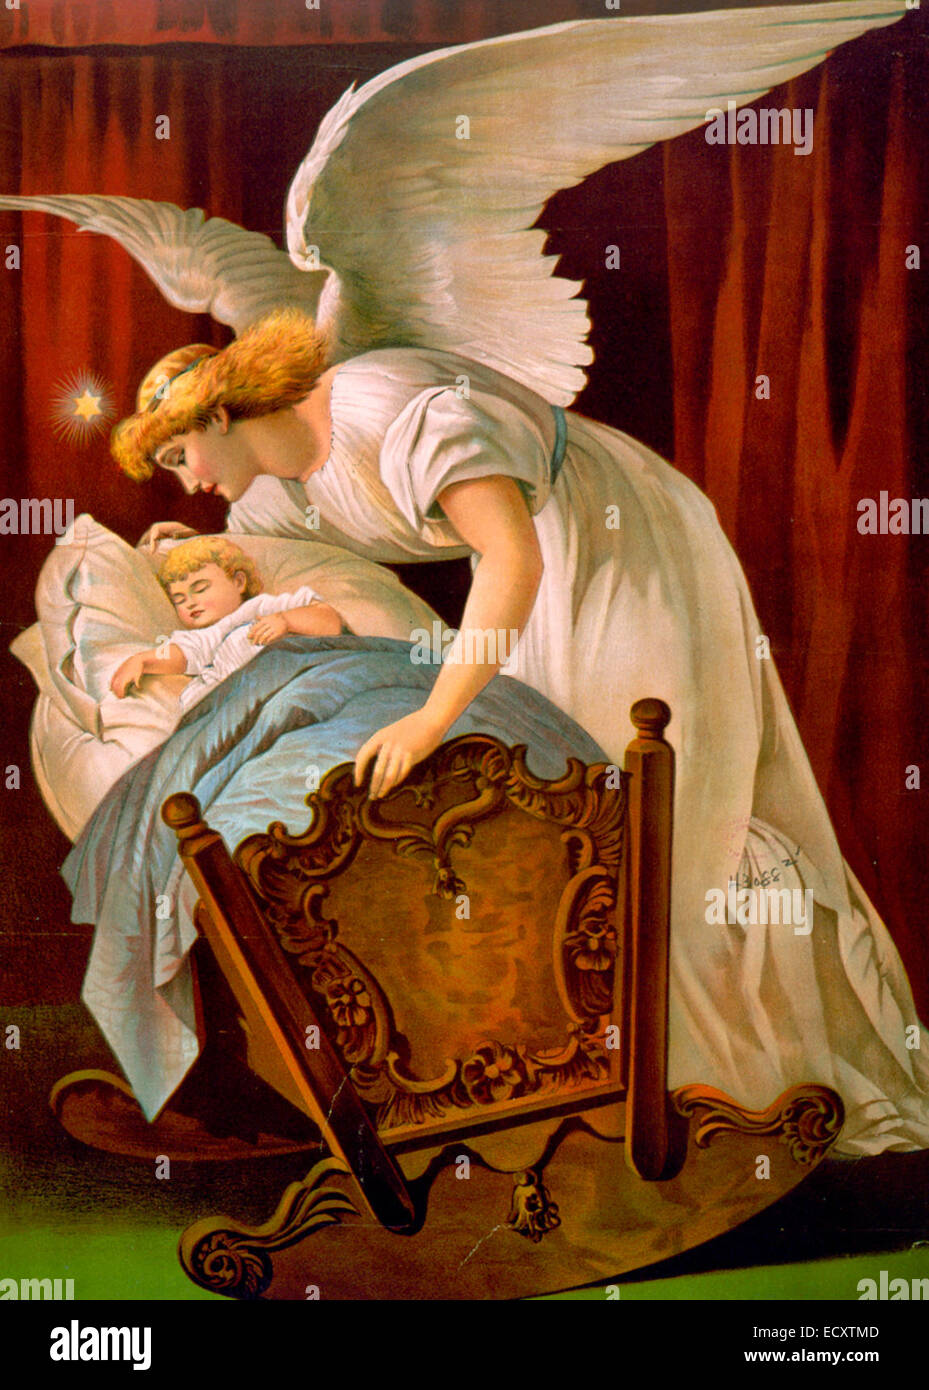 The angel's whisper -  Angel watching over baby sleeping in cradle, circa 1894 - Stock Image